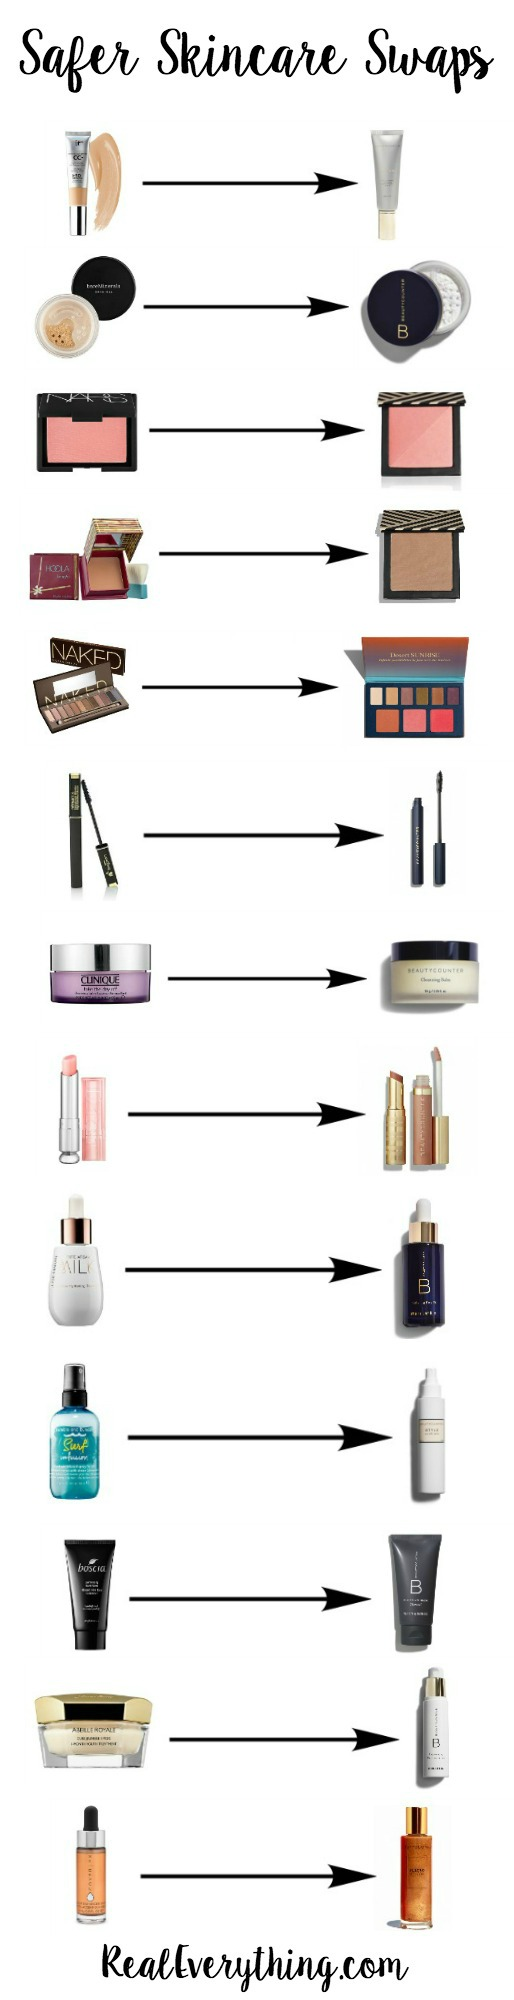 Safer Skincare Swaps Long Graphic Final